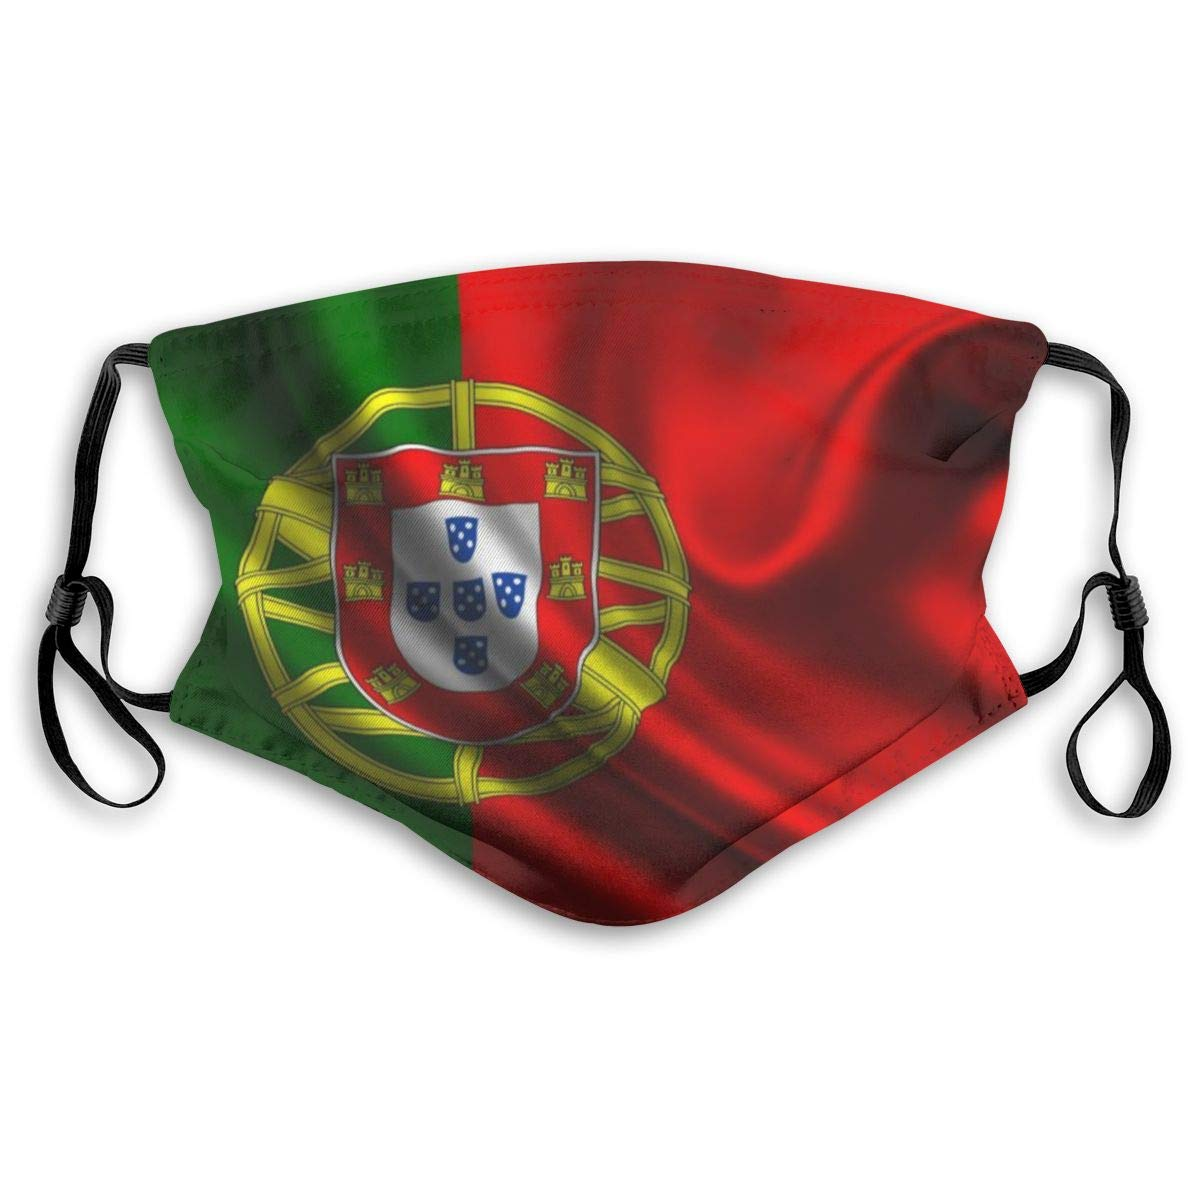 Portugal Flag Washable Reusable Mask, Anti Dust Half Face Mouth Mask For Kids Teens Men Women With Adjustable Ear Loops